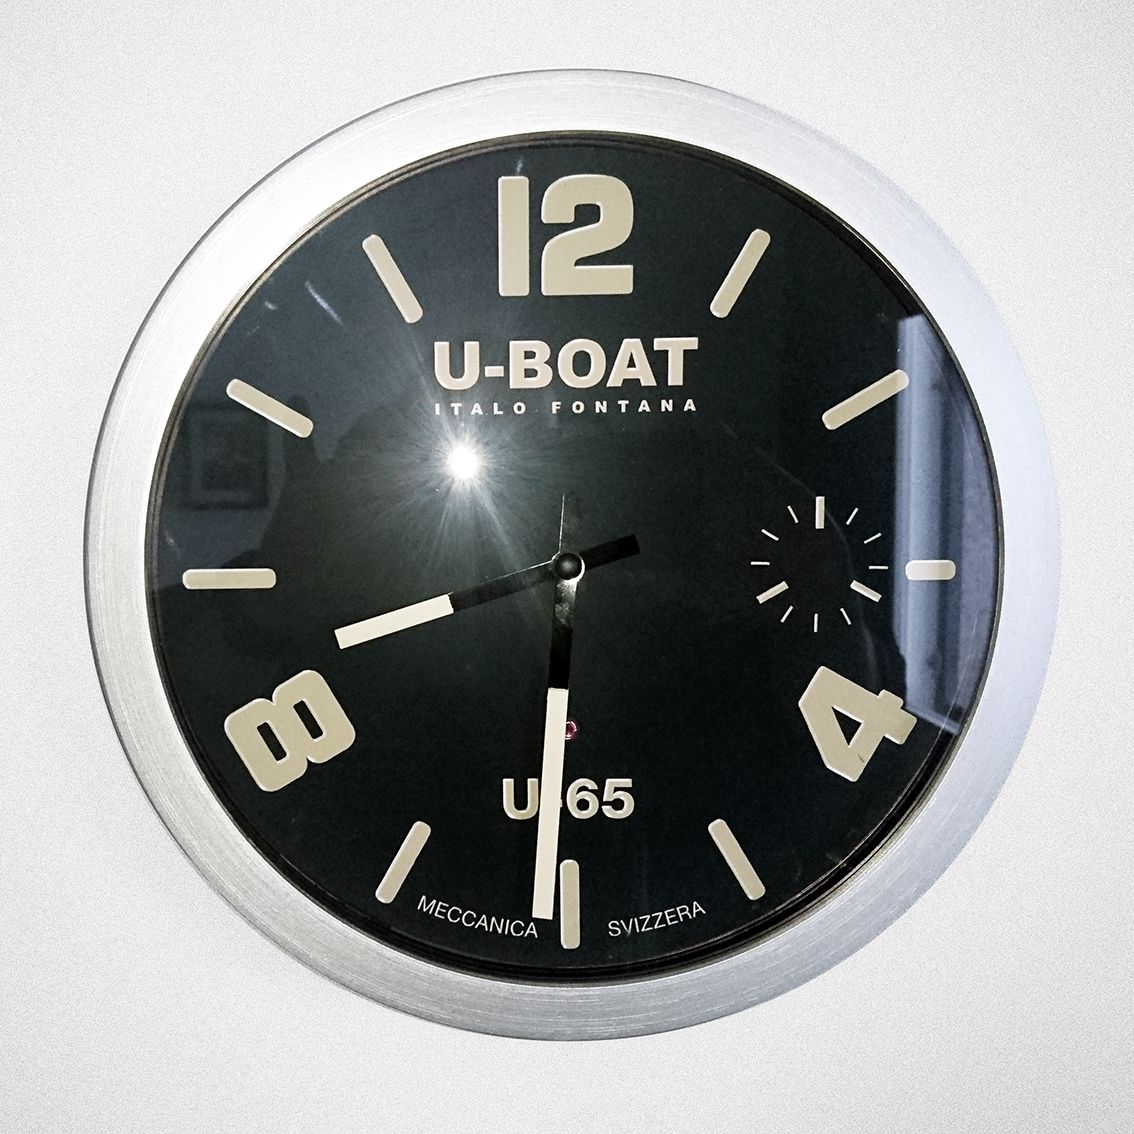 And Another Diy Project Ikea S Wall Clock With A U Boat Wrist Watch Look